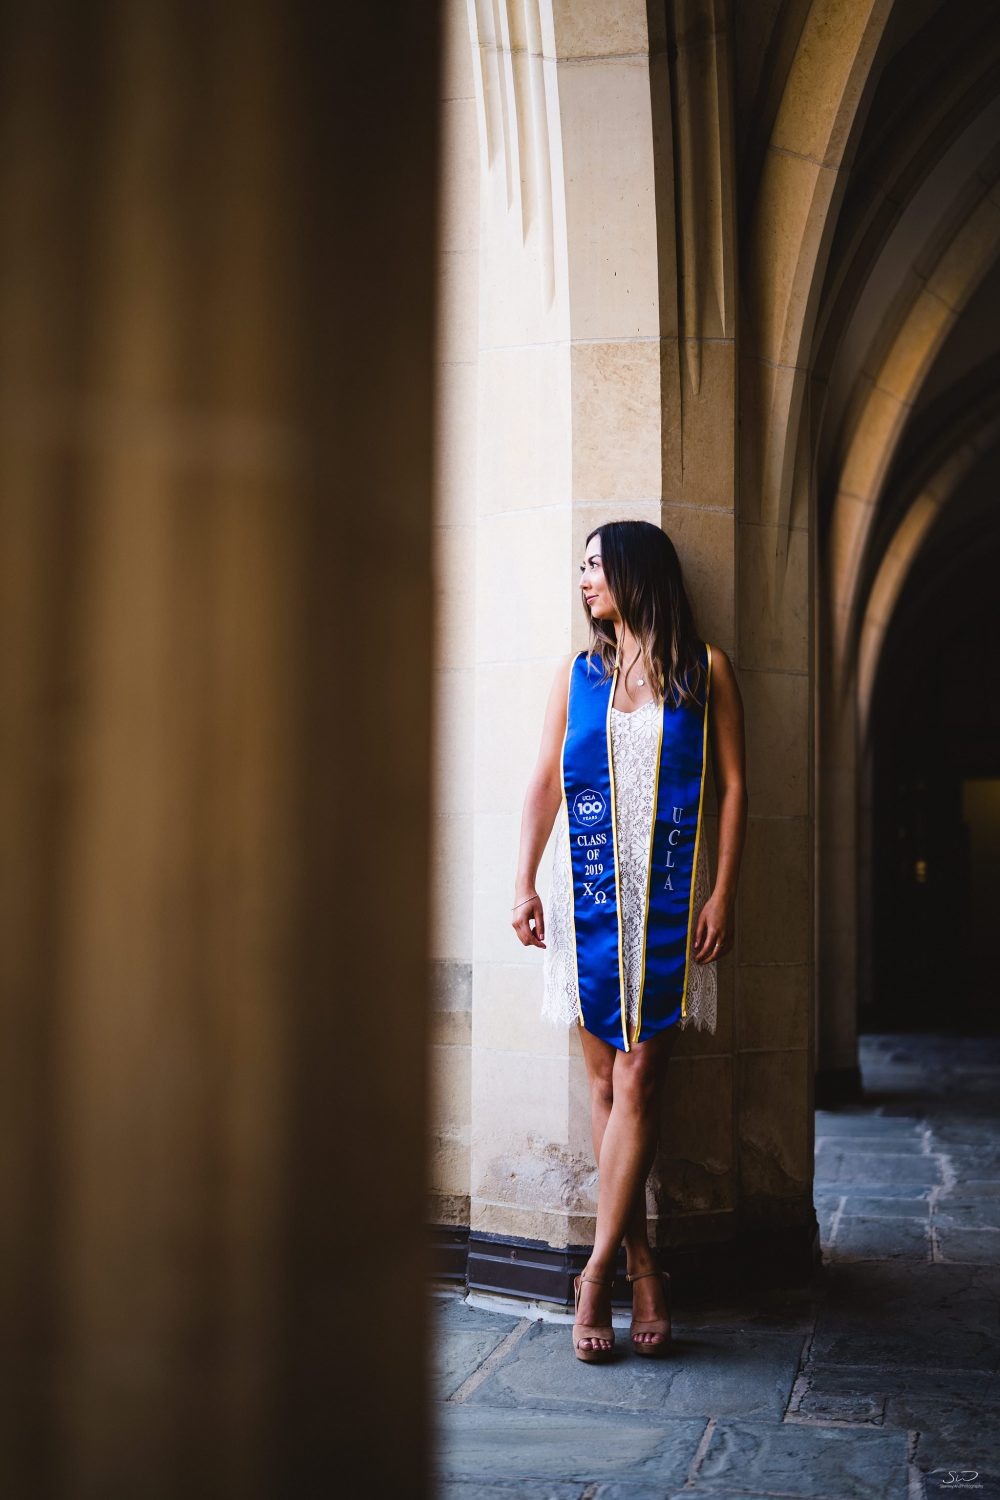 usc ucla los angeles graduation senior portrait photographer19